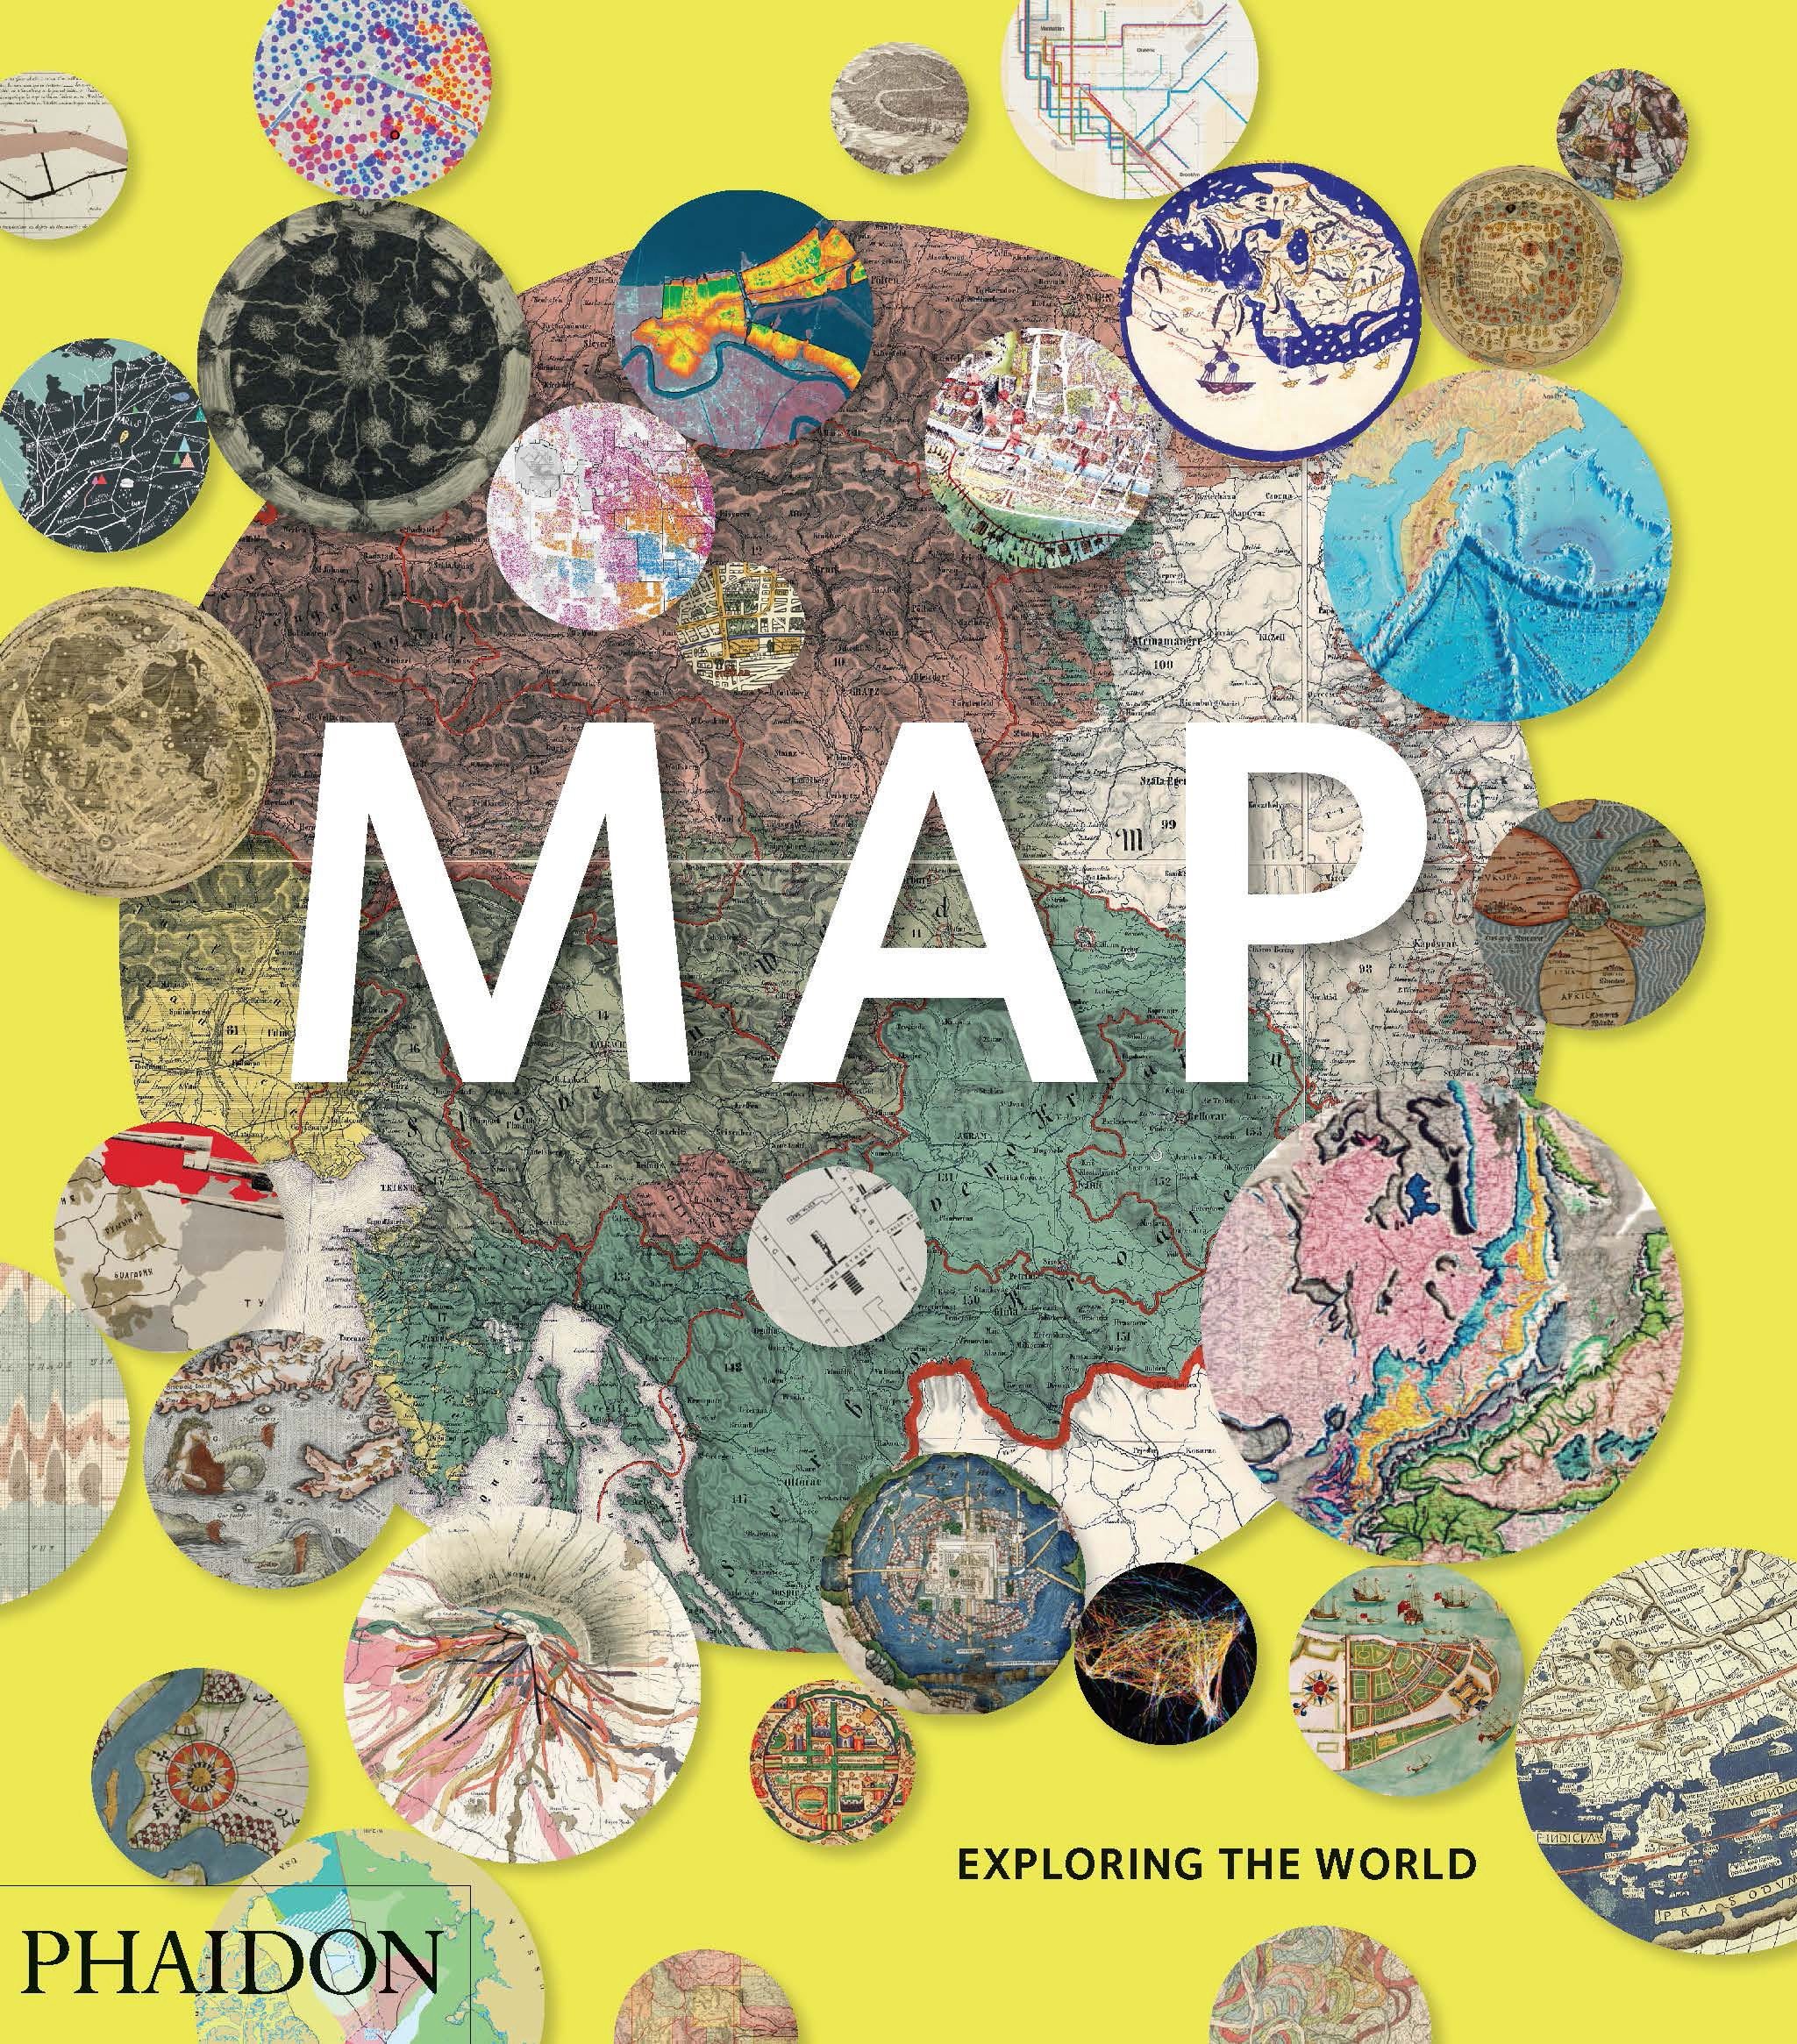 Map: Assembling the World in an Image by Phaidon Editors, ISBN: 9780714869445